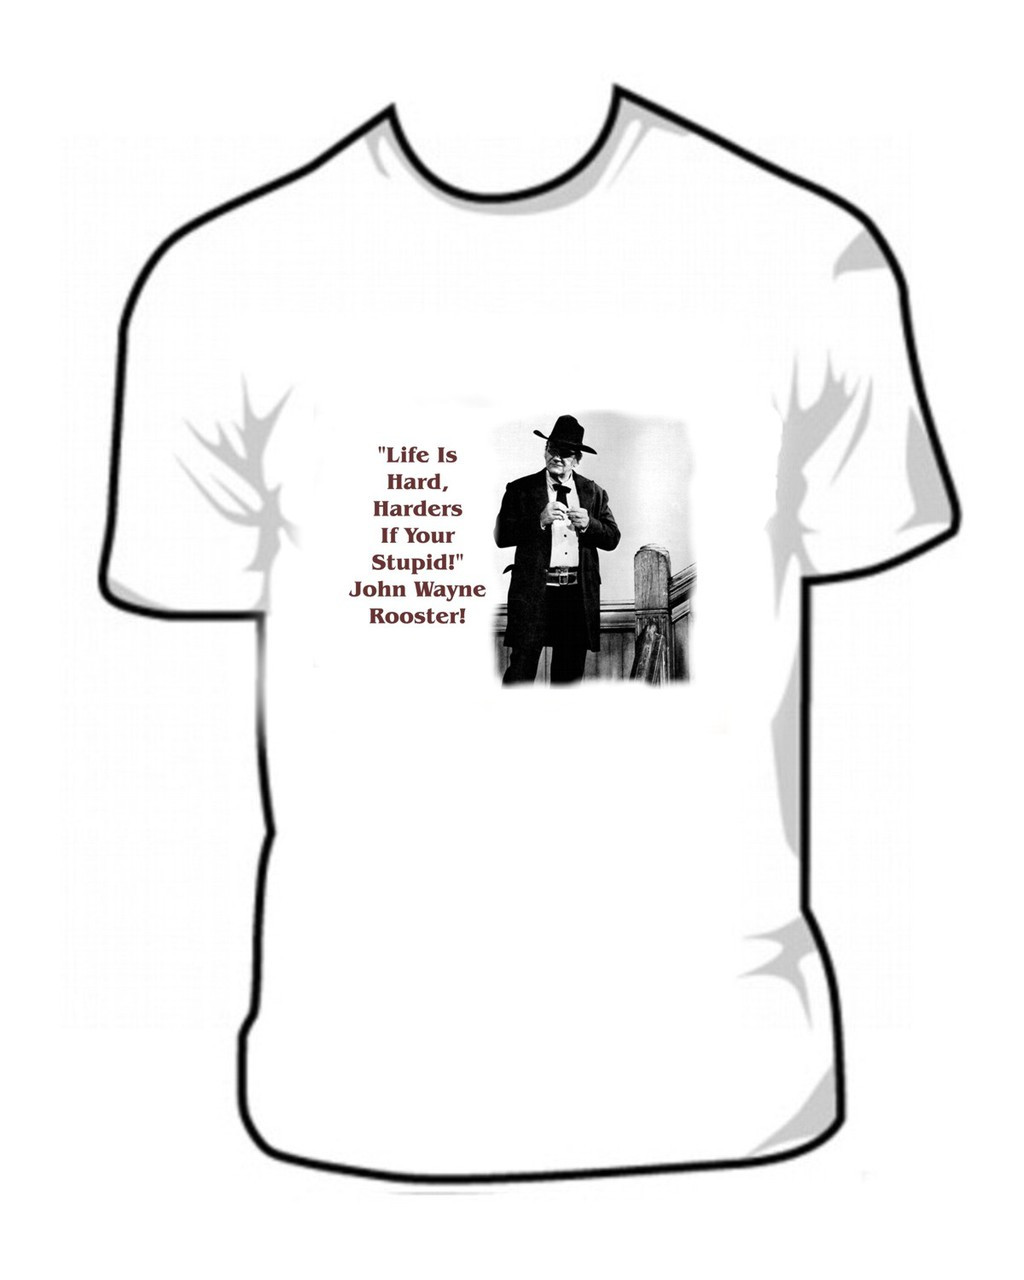 0da5a5f5 ... Life is hard, Harder If You're Stupid.T Shirt - Rooster Cogburn True  Grit. Price: $15.95. Image 1